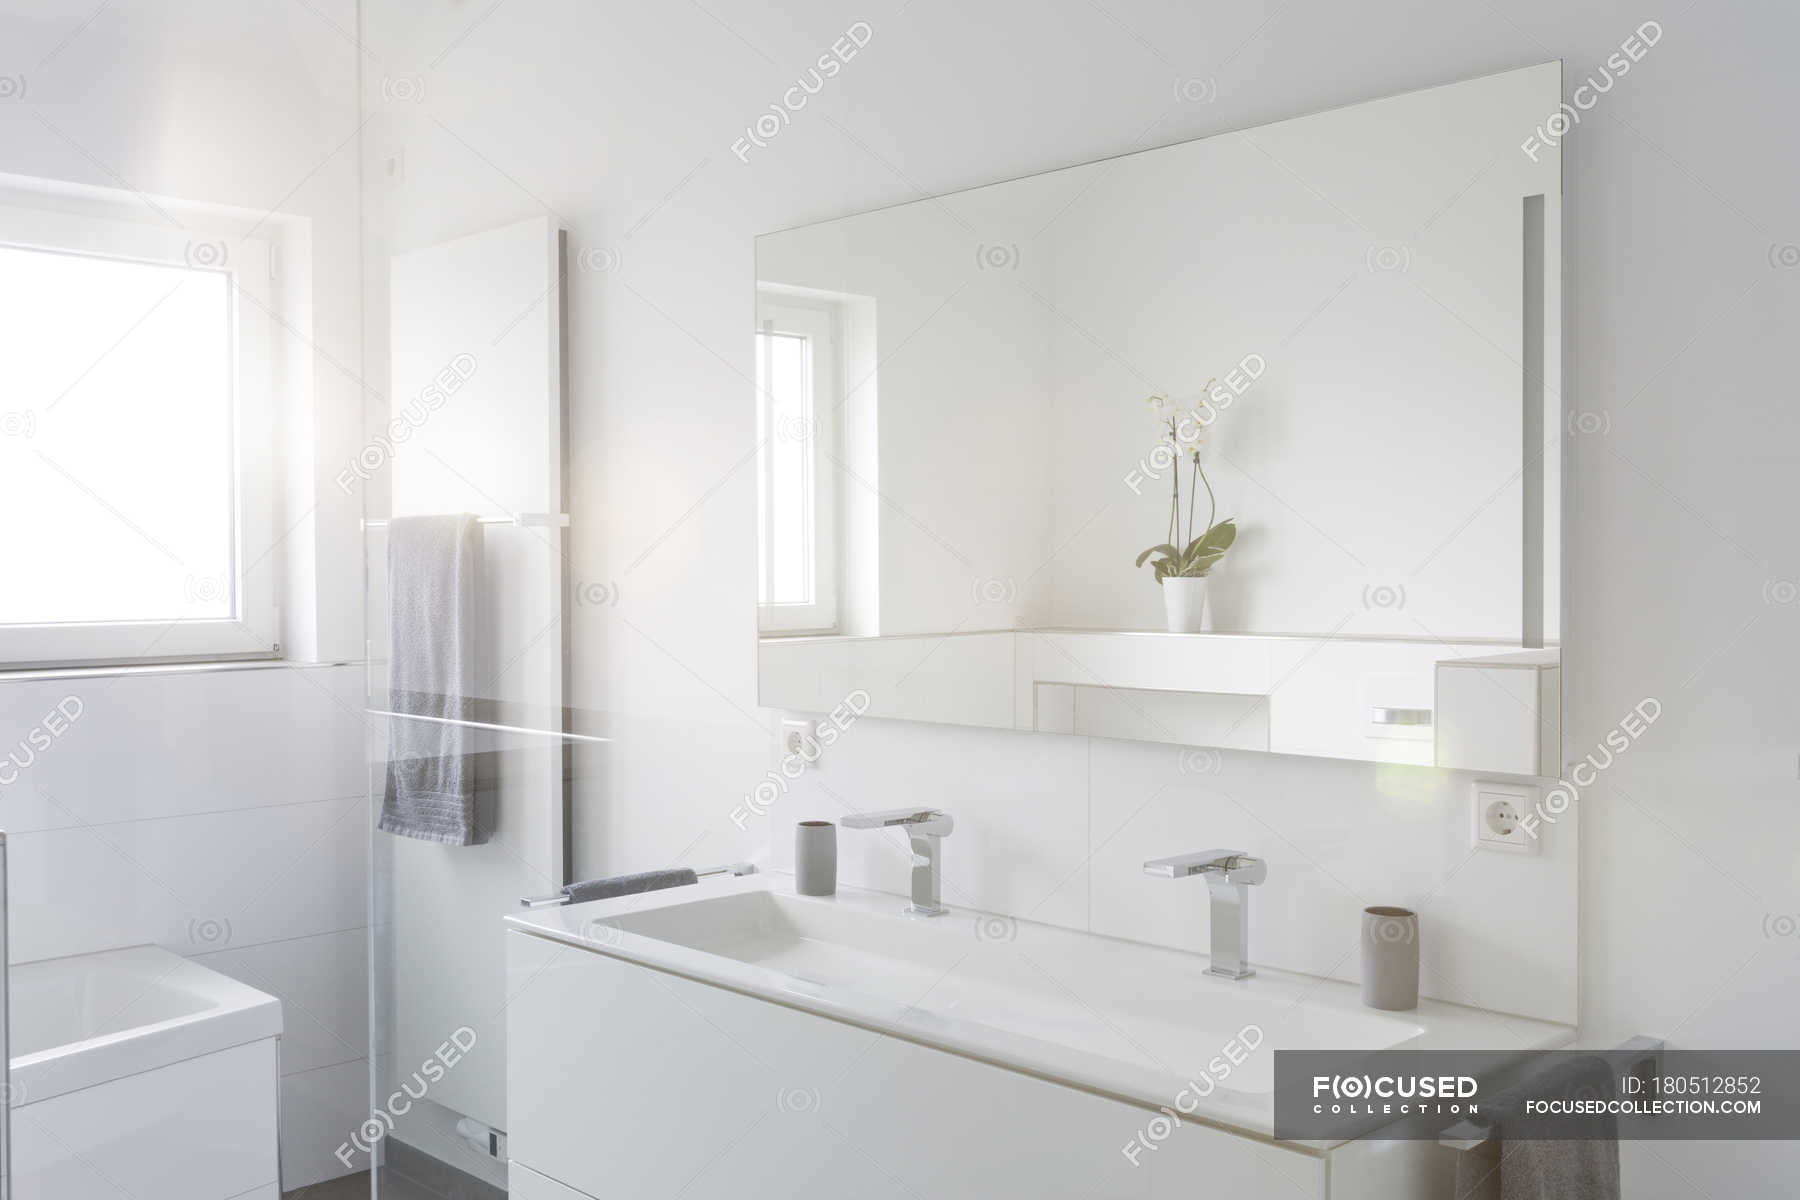 Interior Of Modern White Bathroom In Apartment Shower Room Empty Stock Photo 180512852